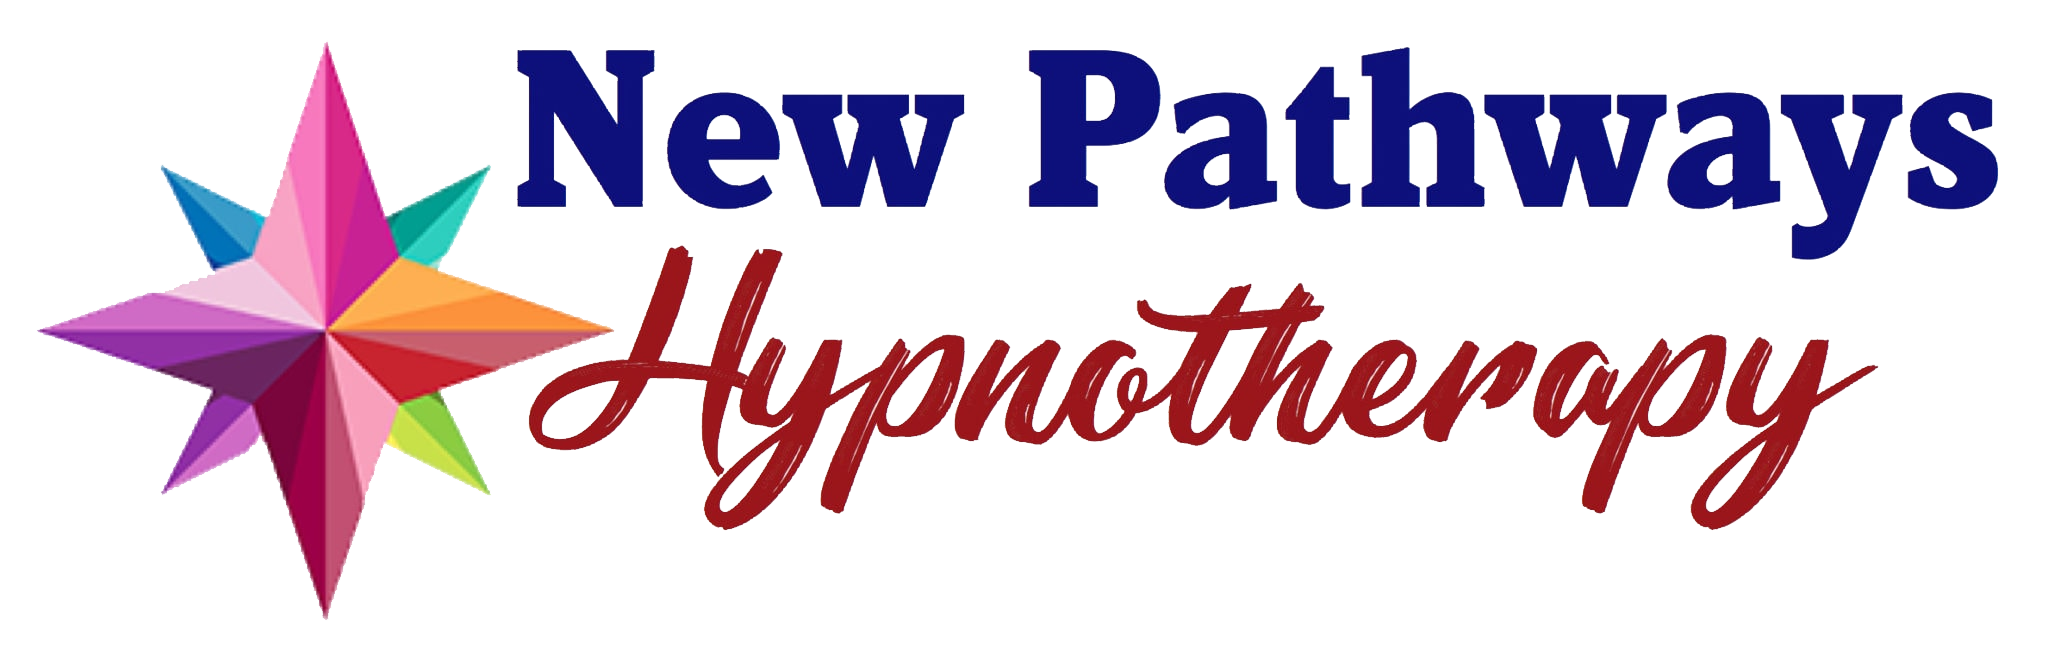 New Pathways Hypnotherapy